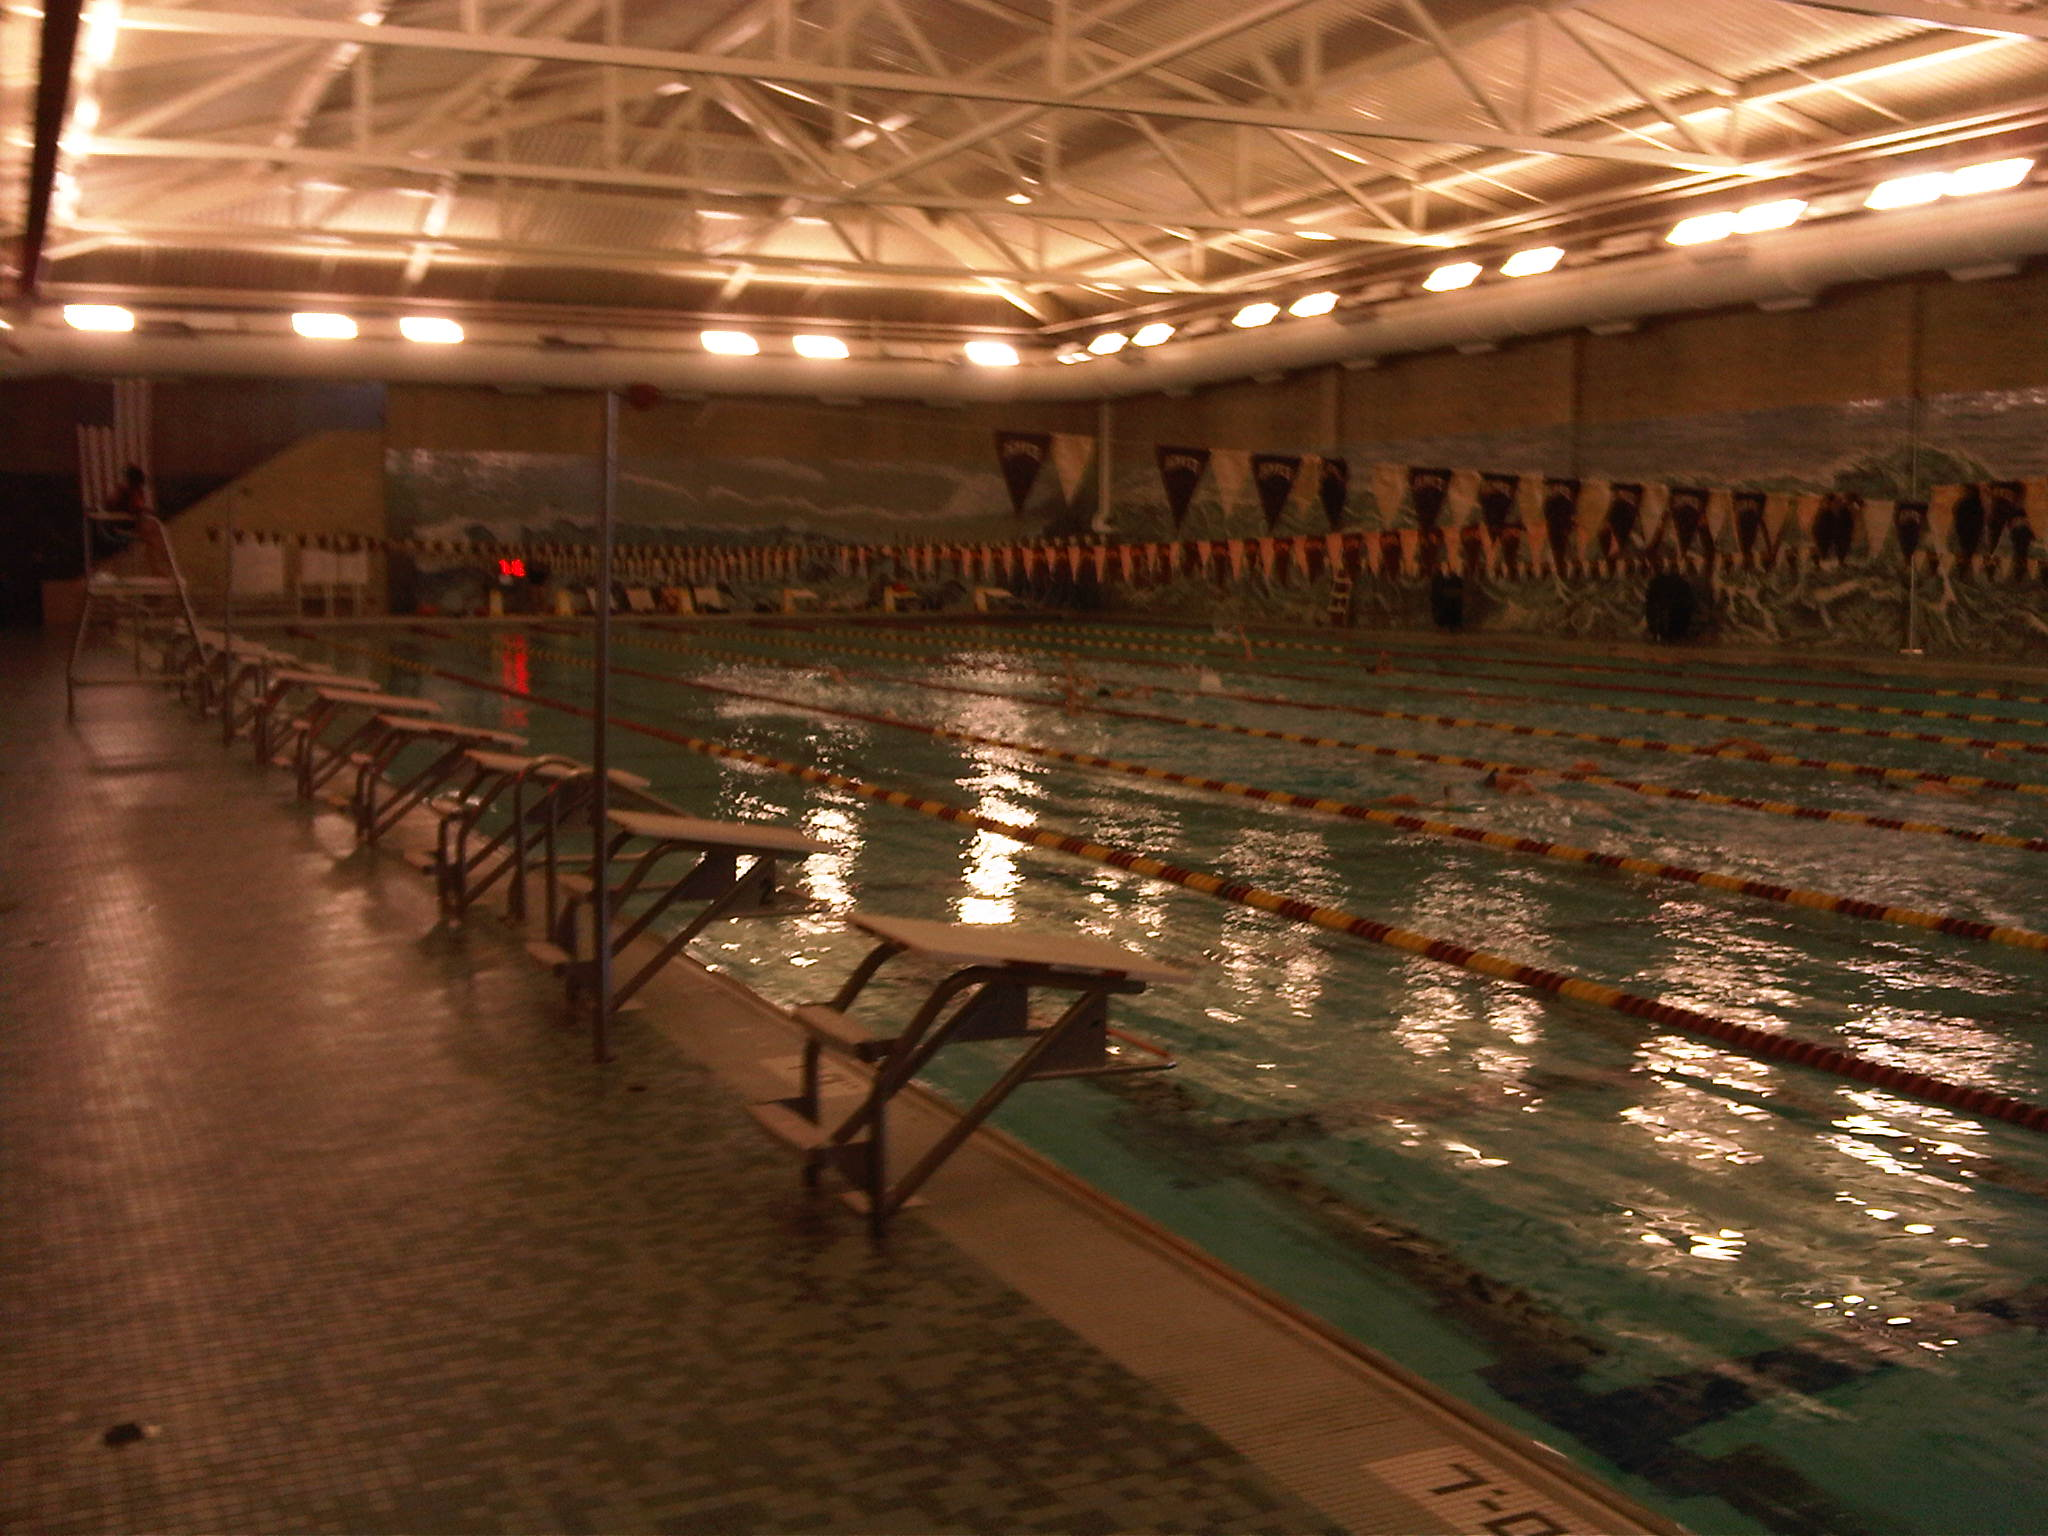 0101 - El Pomar Natatorium (U. Denver)